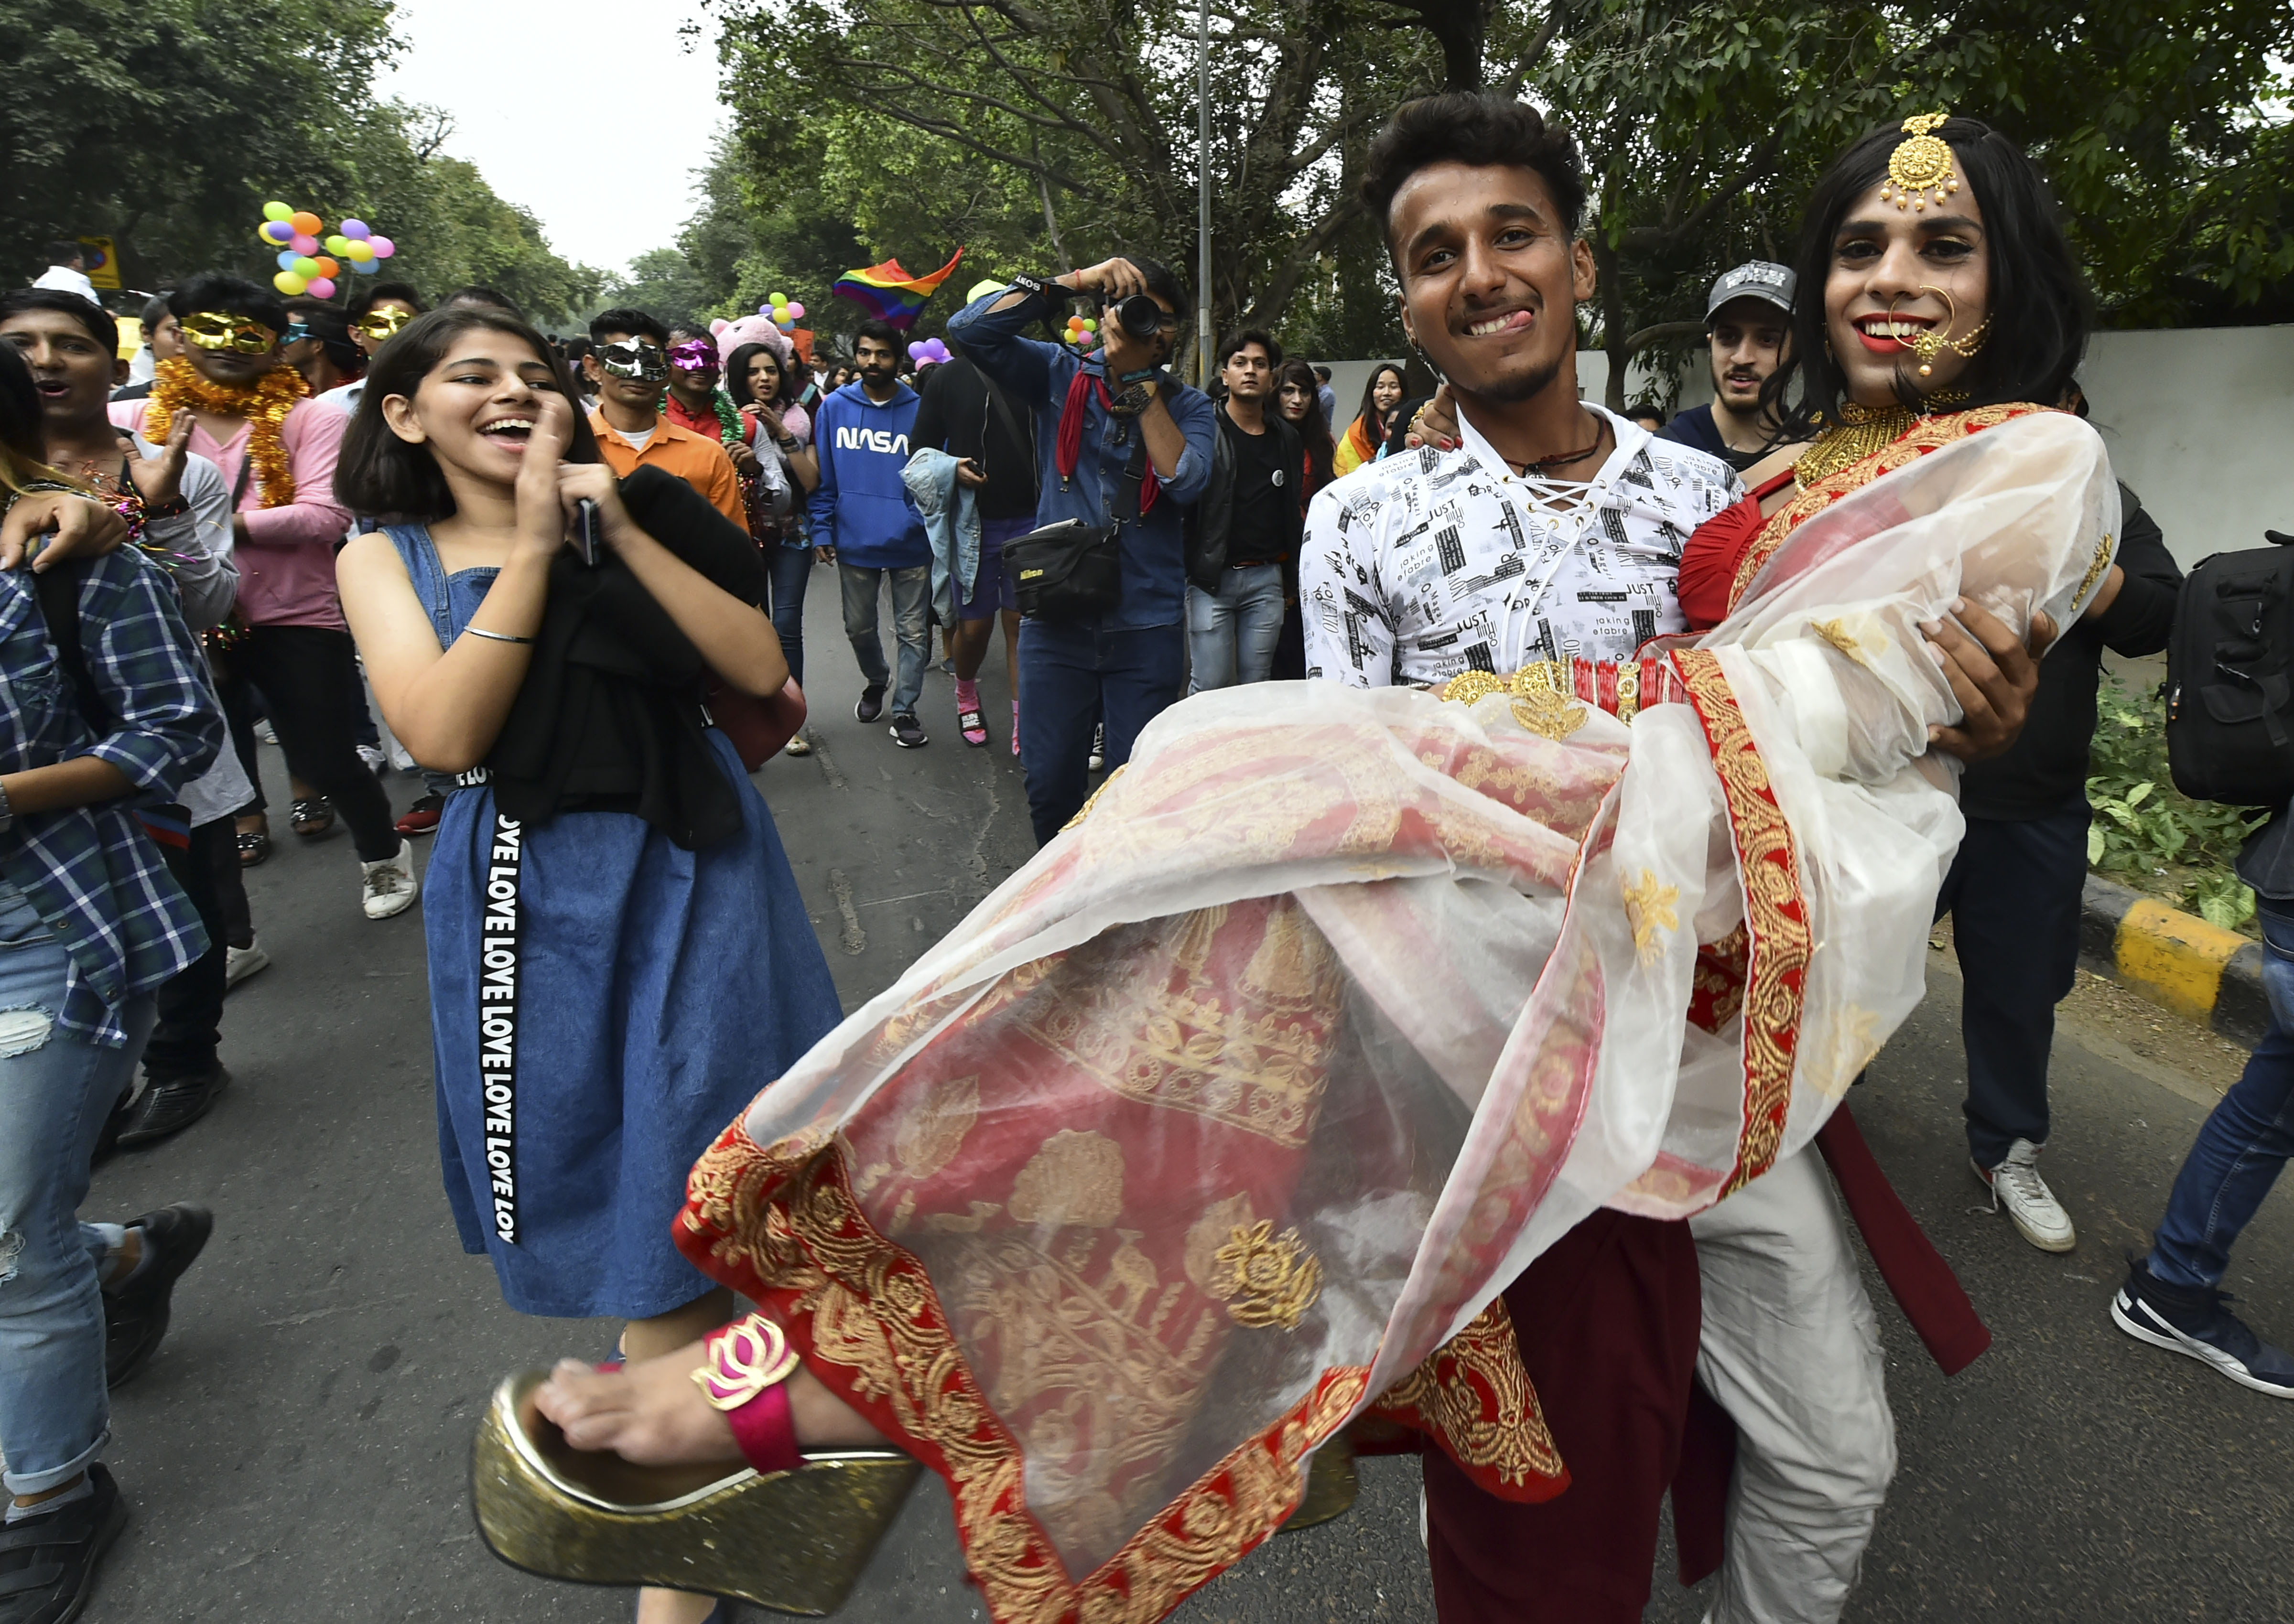 Members of the LGBTQ community and their supporters march during the annual Delhi Queer Pride Parade in New Delhi on Sunday, November 24, 2019.